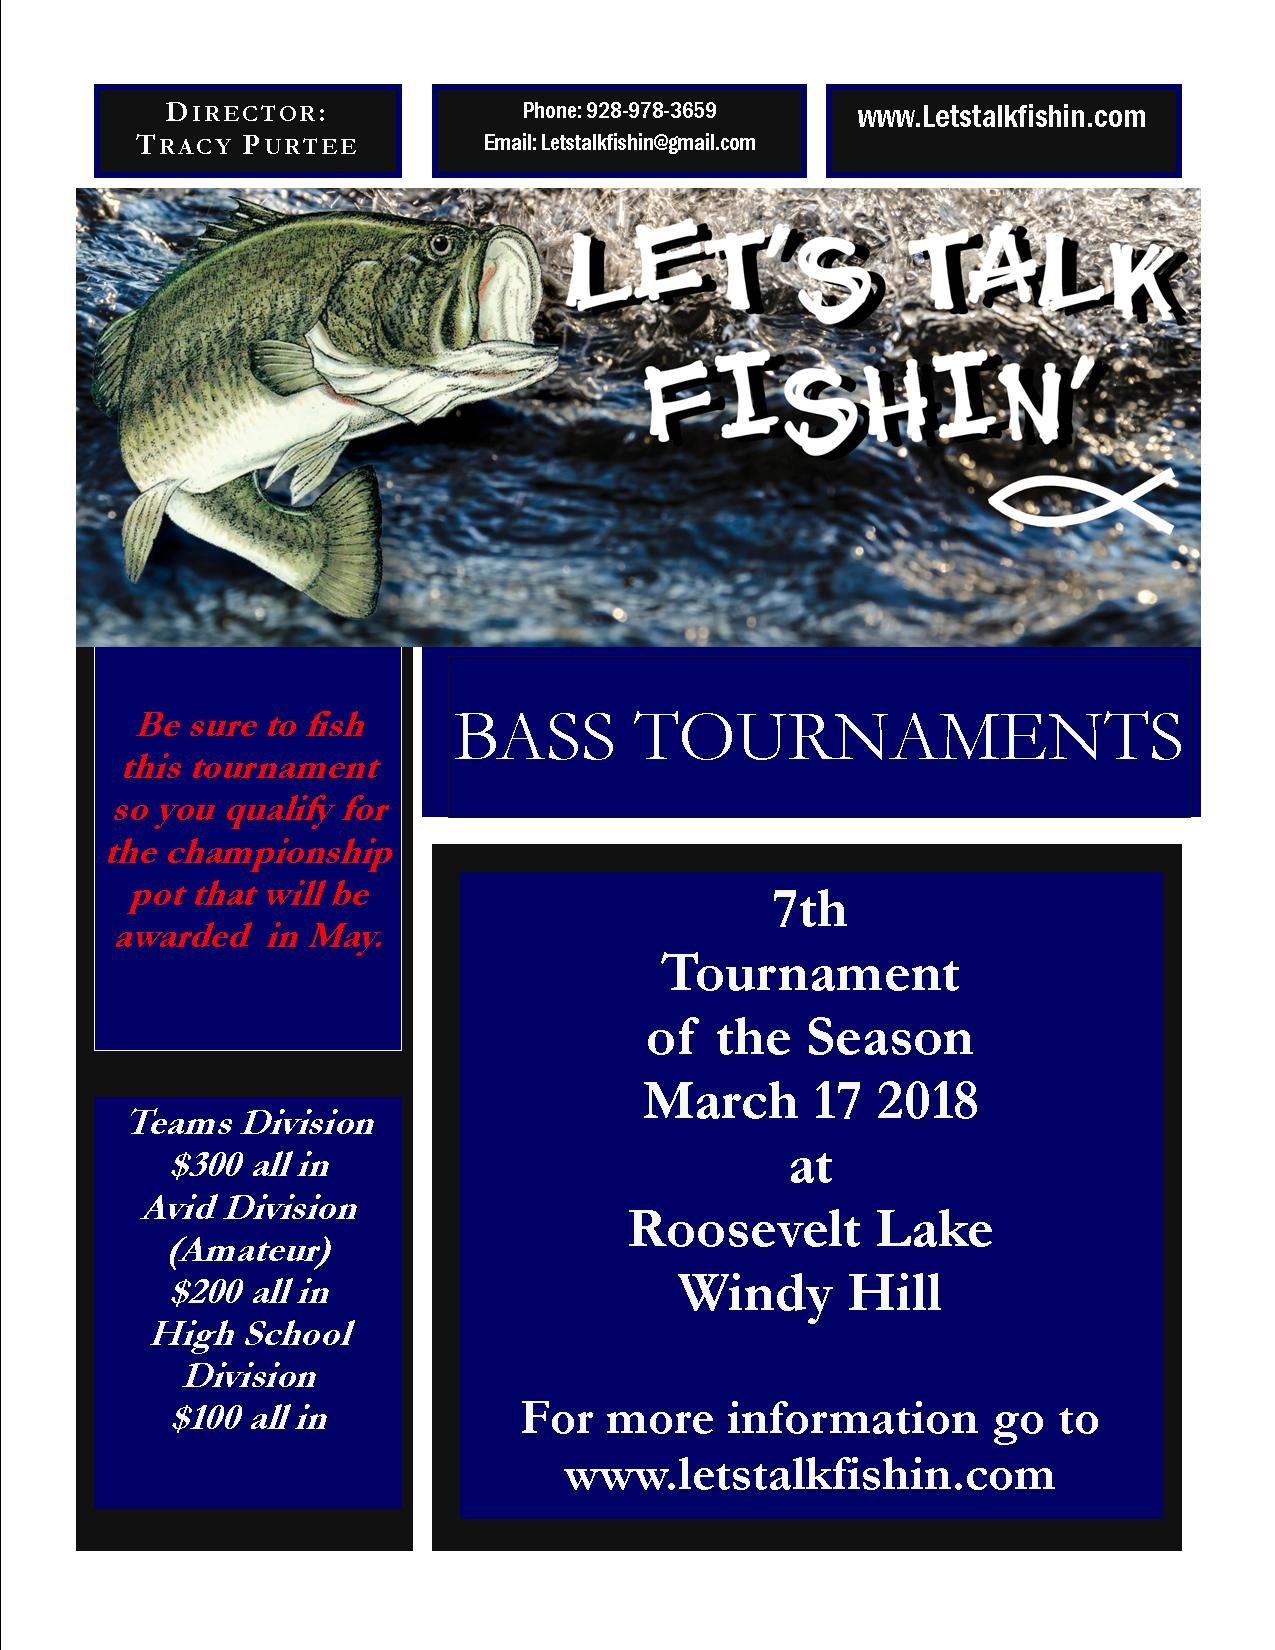 Click image for larger version  Name:7th Tournament.jpg Views:1550 Size:283.6 KB ID:96826